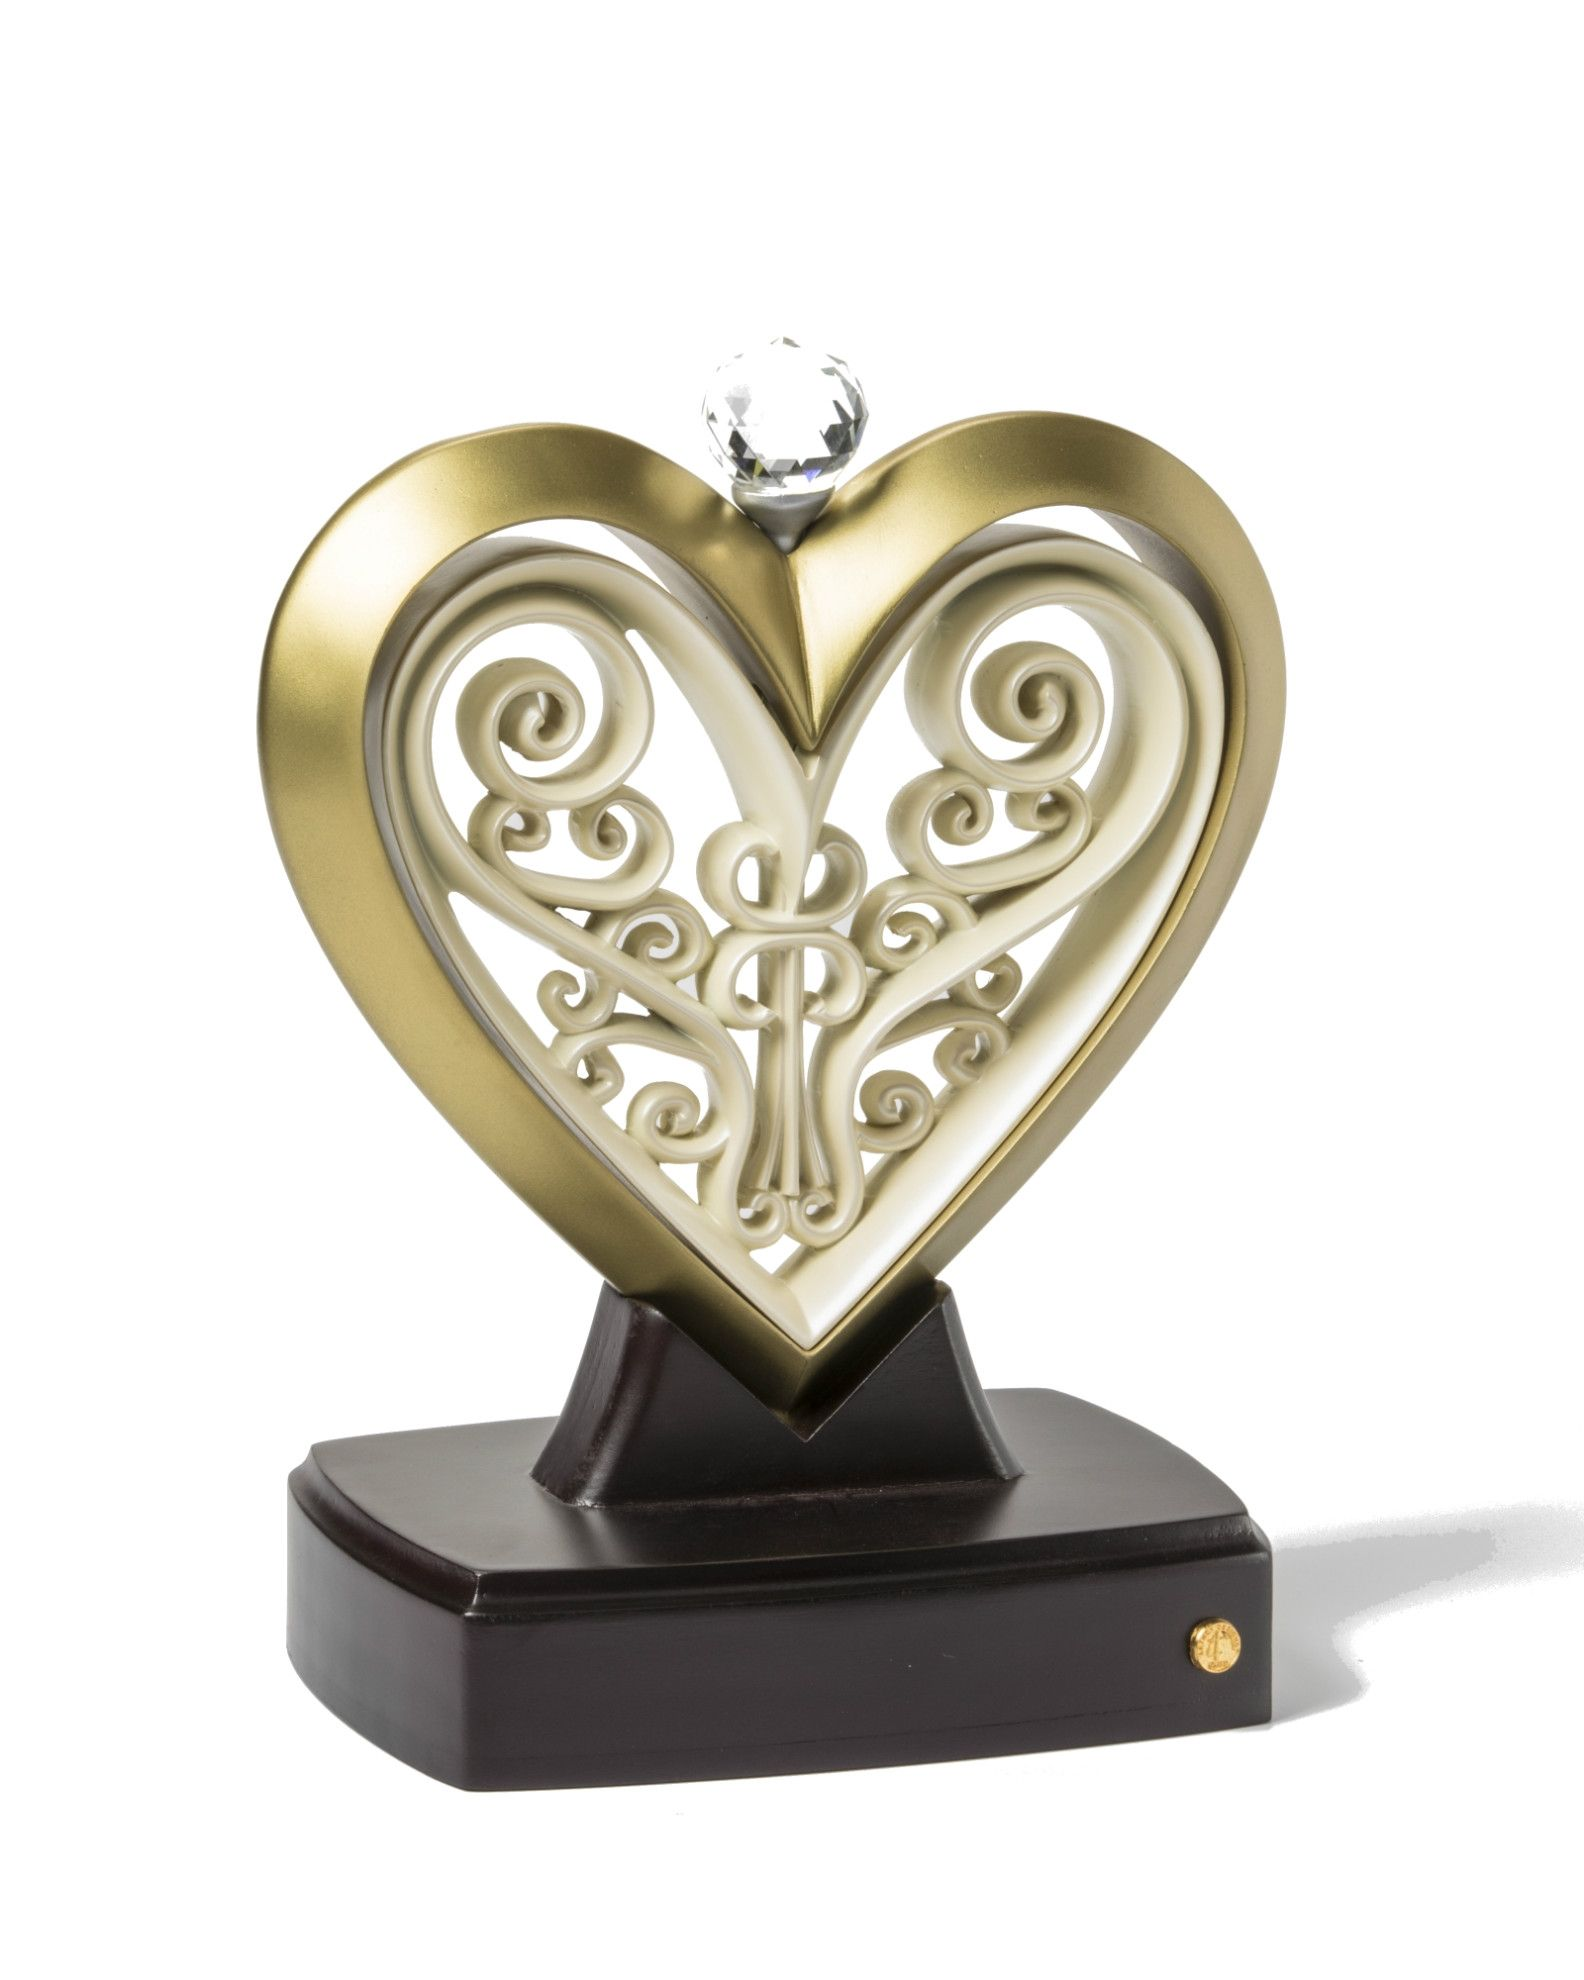 The Unity Heart® Artist Series Champagne and Ivory in 2020